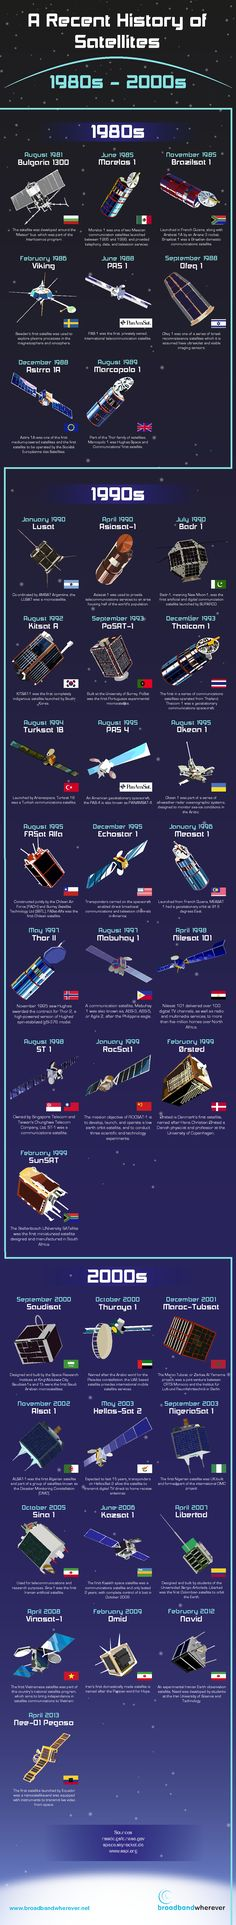 A Recent History of Satellites